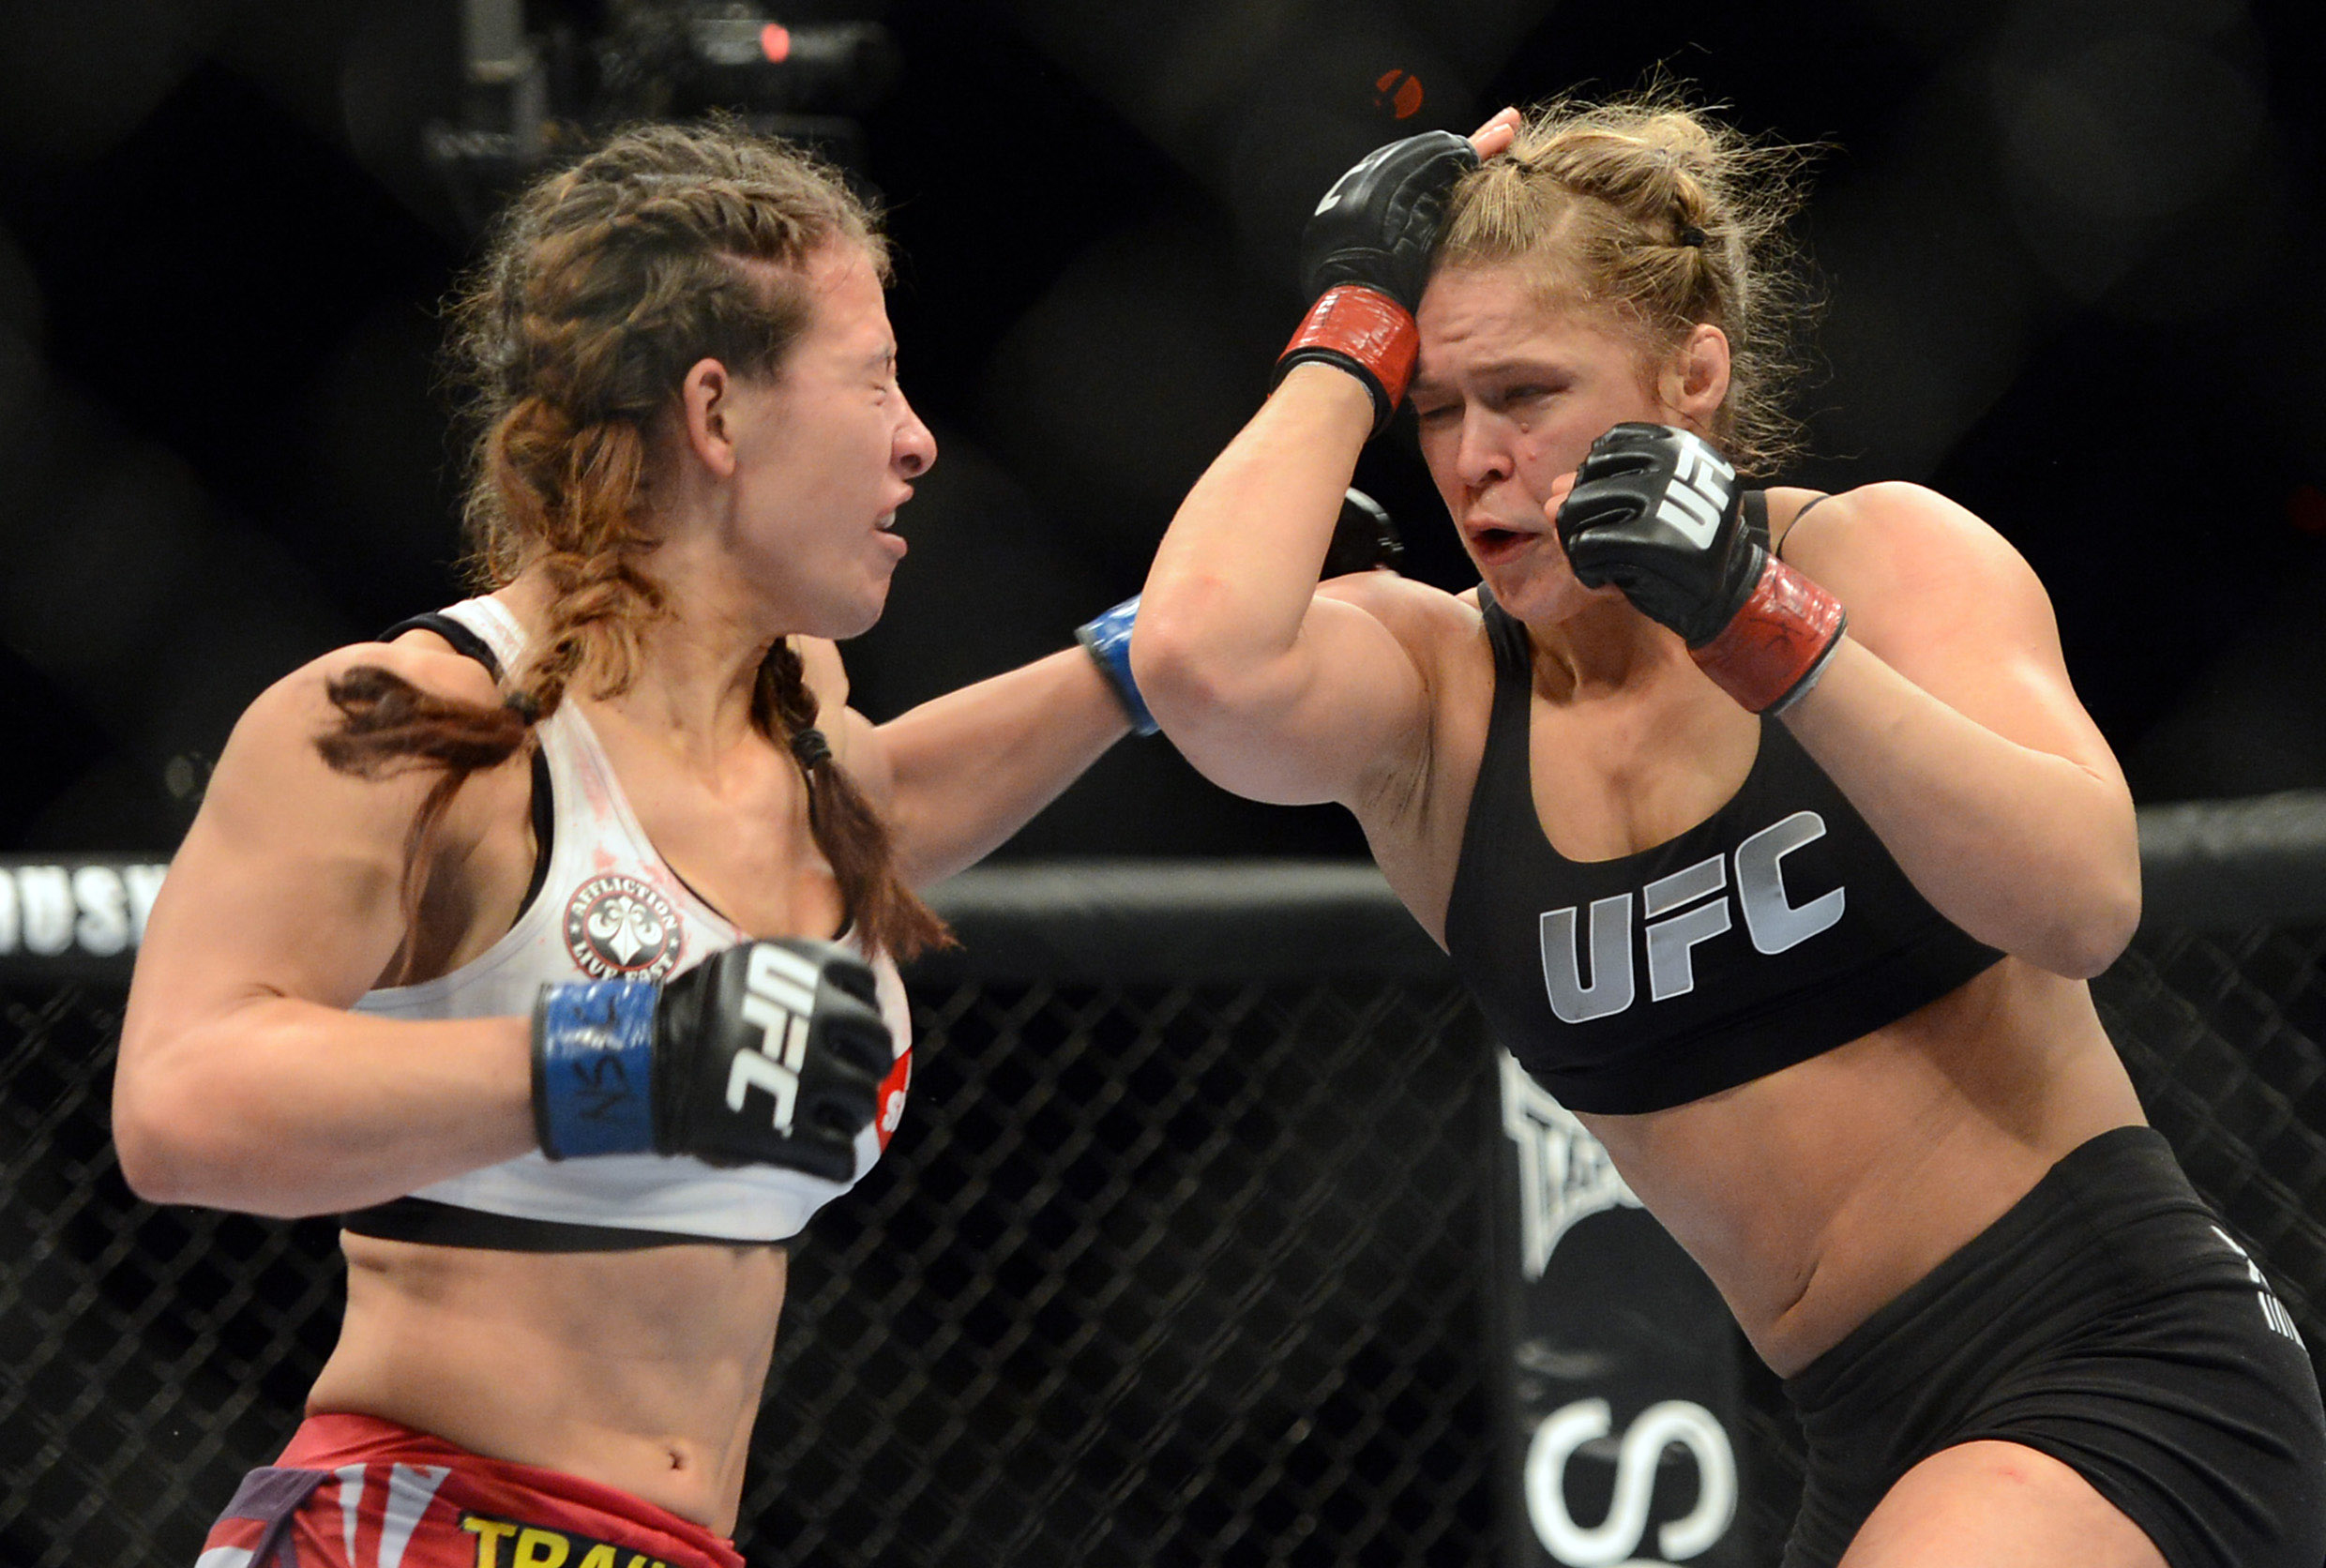 Ronda Rousey (red gloves) and Miesha Tate (blue gloves) fight during the UFC women's bantamweight championship bout at the MGM Grand Garden Arena in Las Vegas on Dec. 28, 2013.